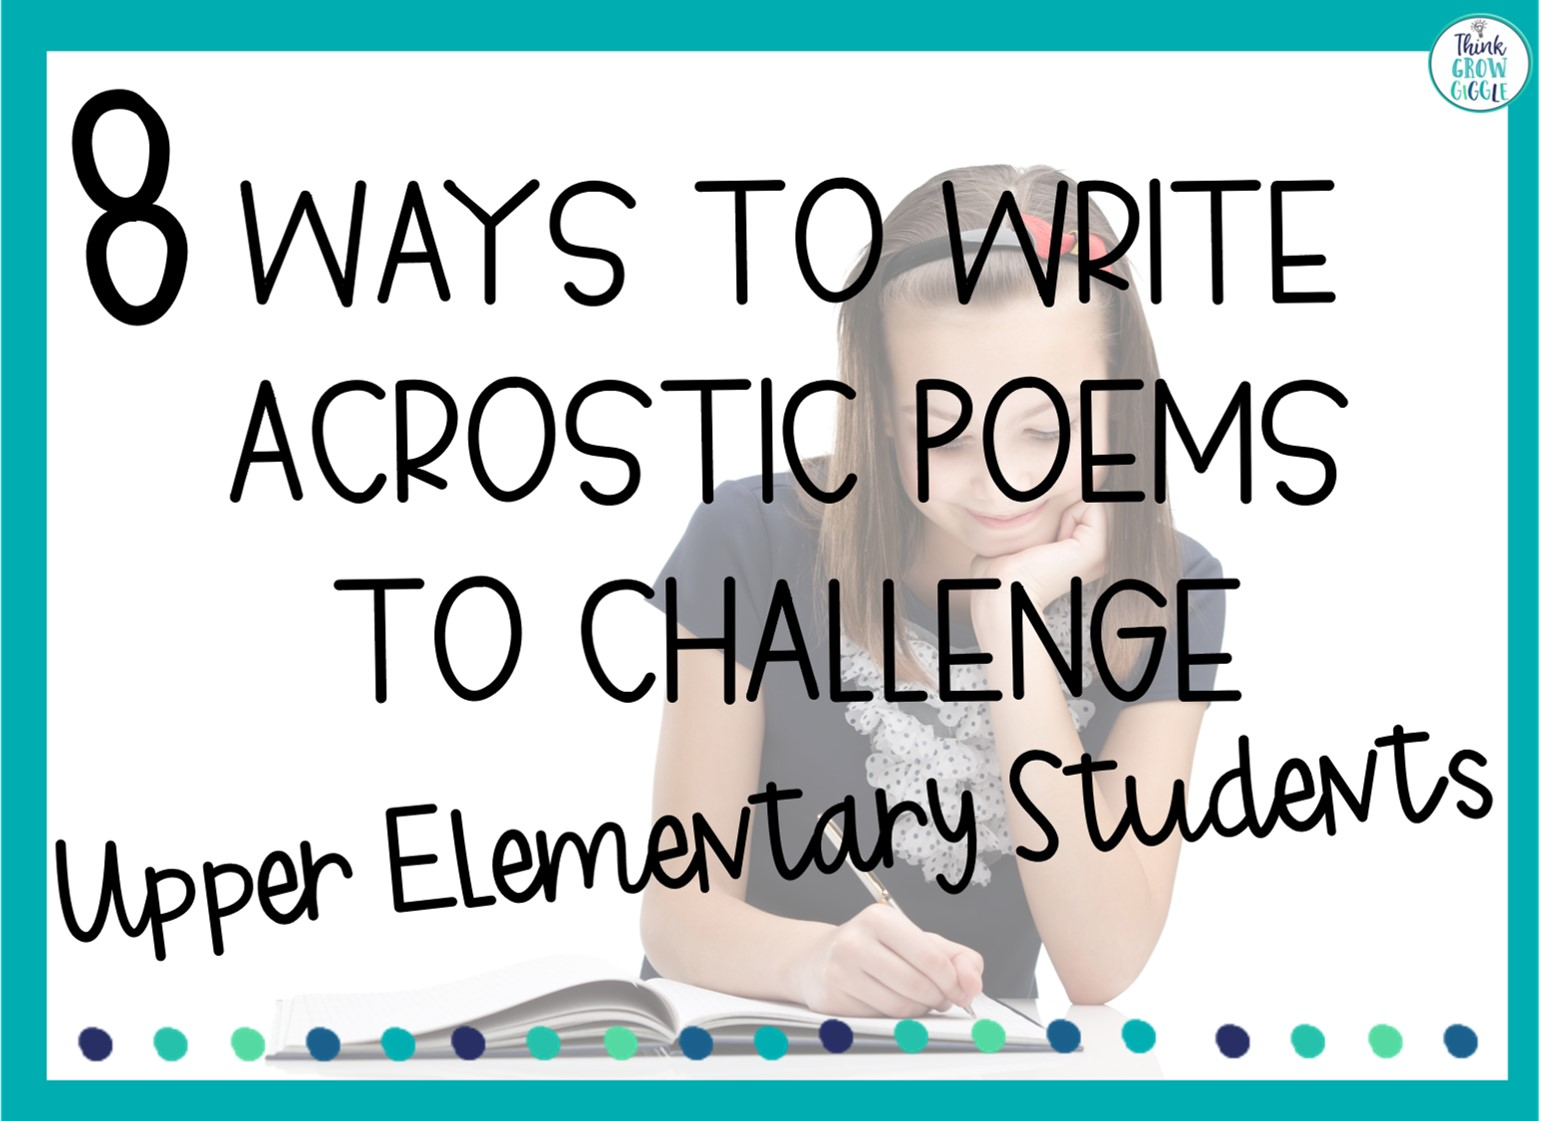 hight resolution of 8 Ways to Write Acrostic Poems to Challenge Upper Elementary Students -  Think Grow Giggle